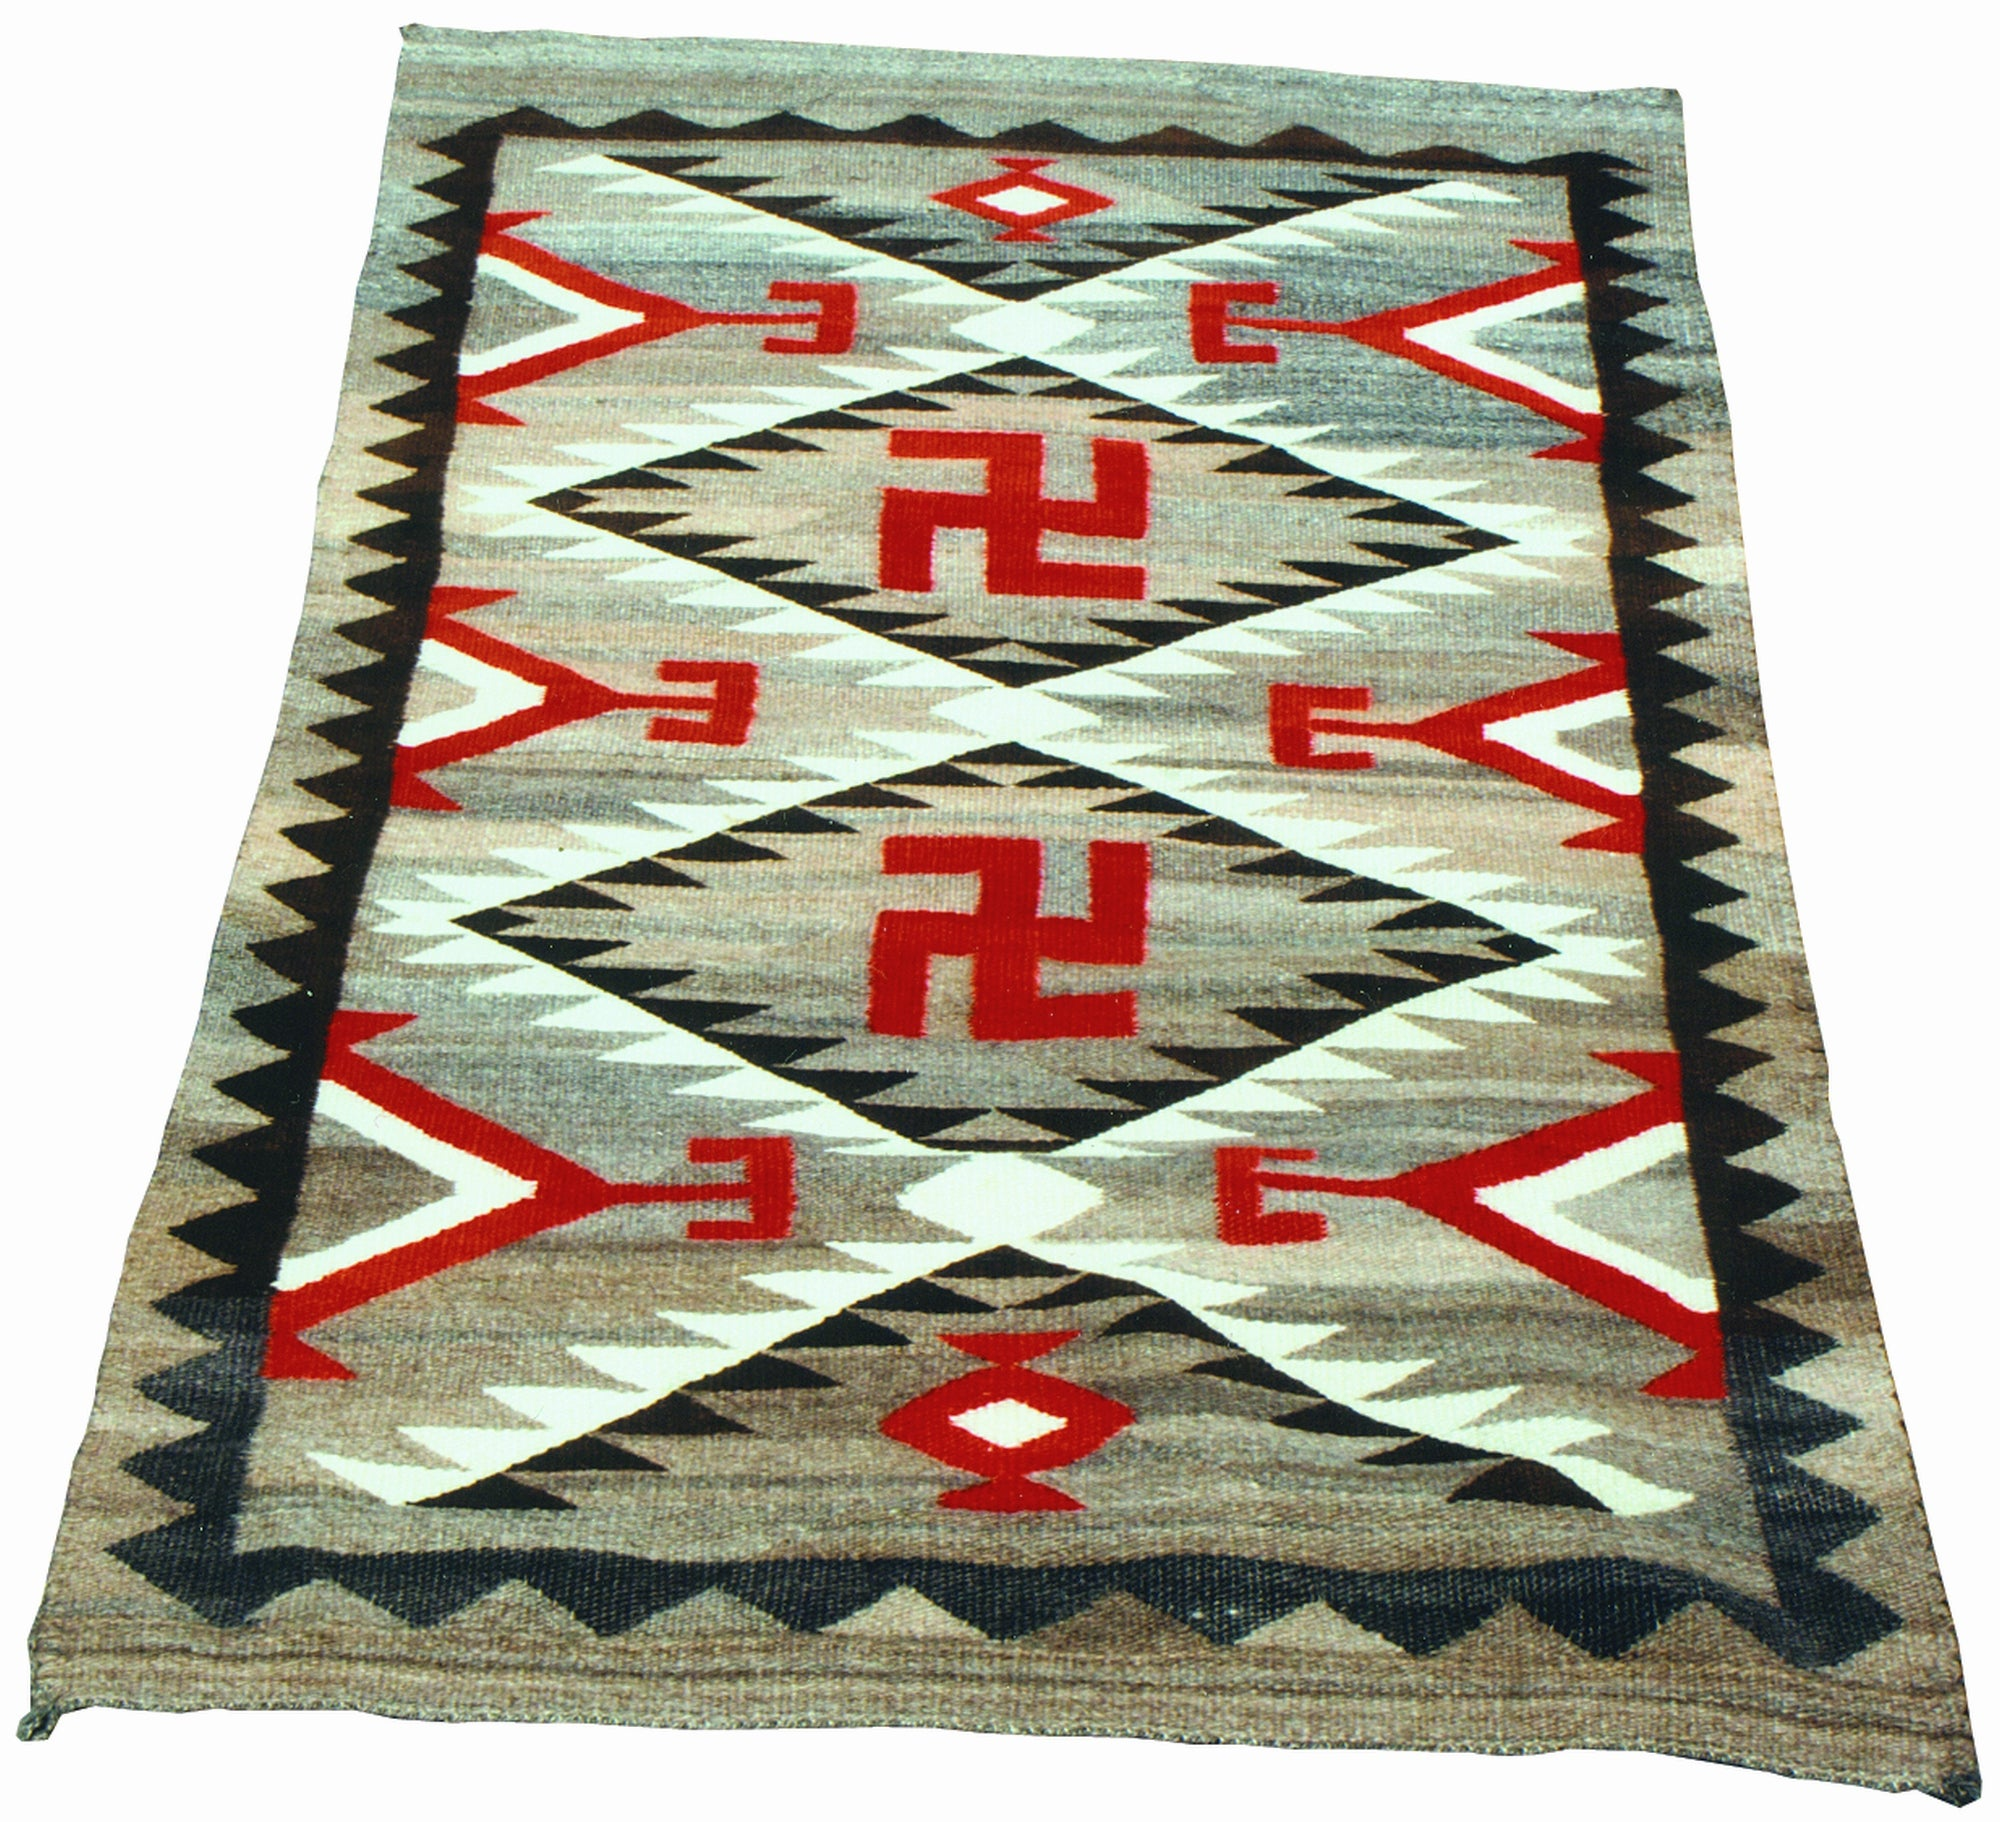 Navajo Ganado Pictorial 4' to 6', ganados, navajo, pictorials, weavings